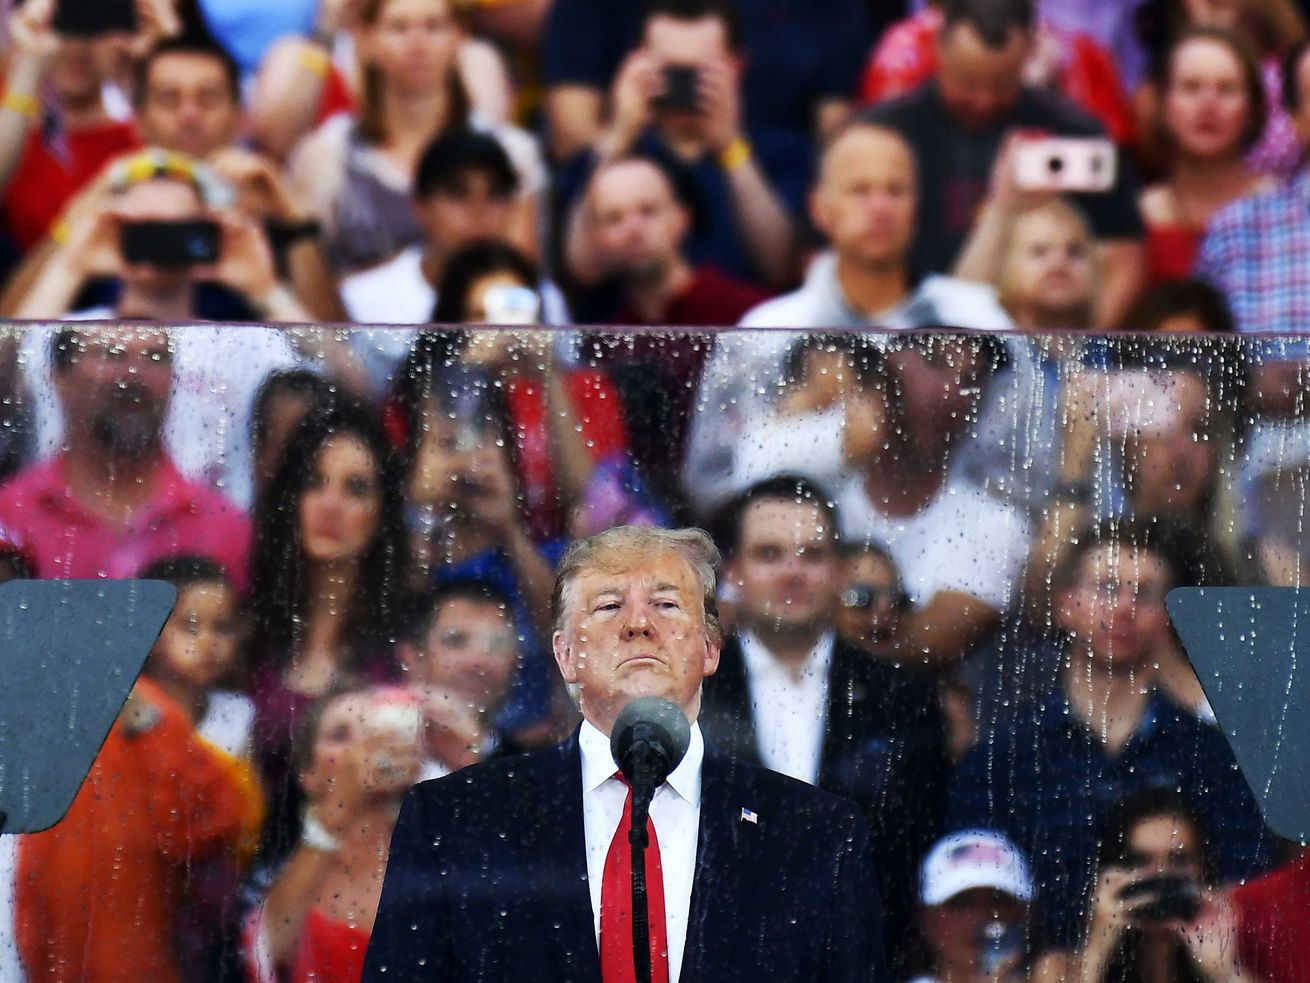 Trump, in a navy suit and bright red tie, scowls in front of a microphone. Behind him is bulletproof glass, wet from rain. And behind the glass, a crowd of cheering Trump supporters wearing red, white, and blue.